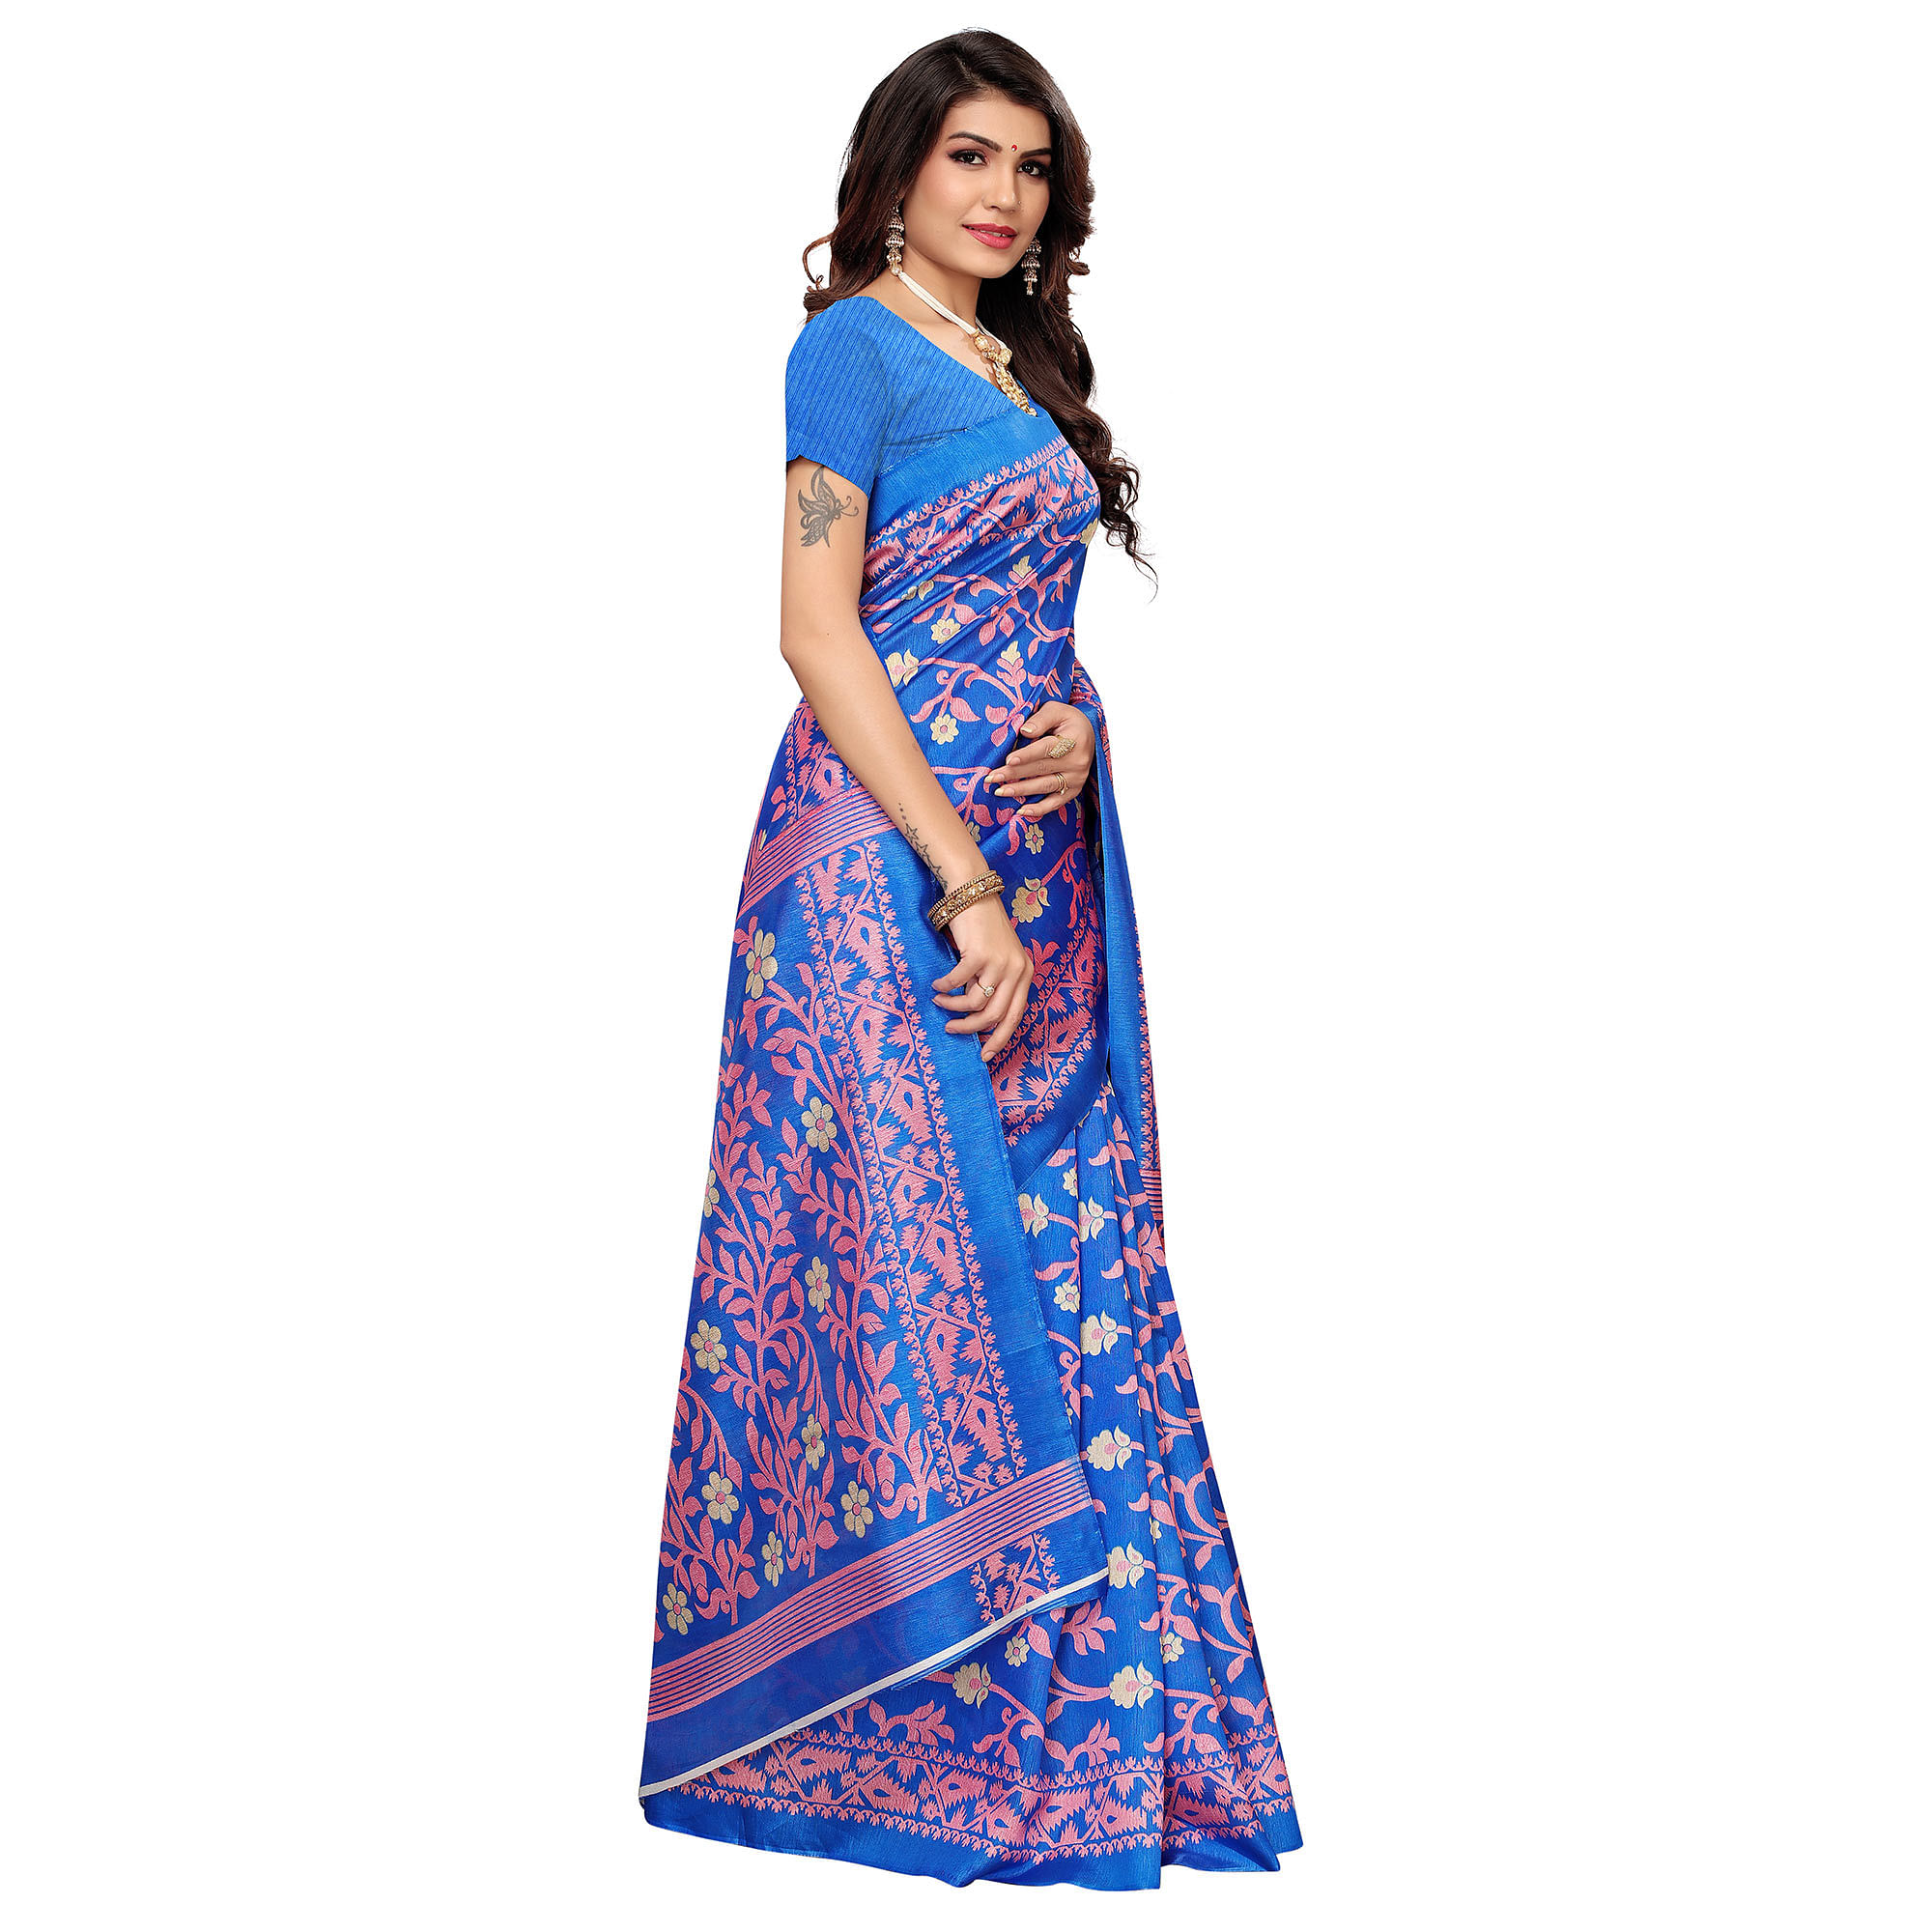 Appealing Blue Colored Casual Printed Zoya Silk Saree